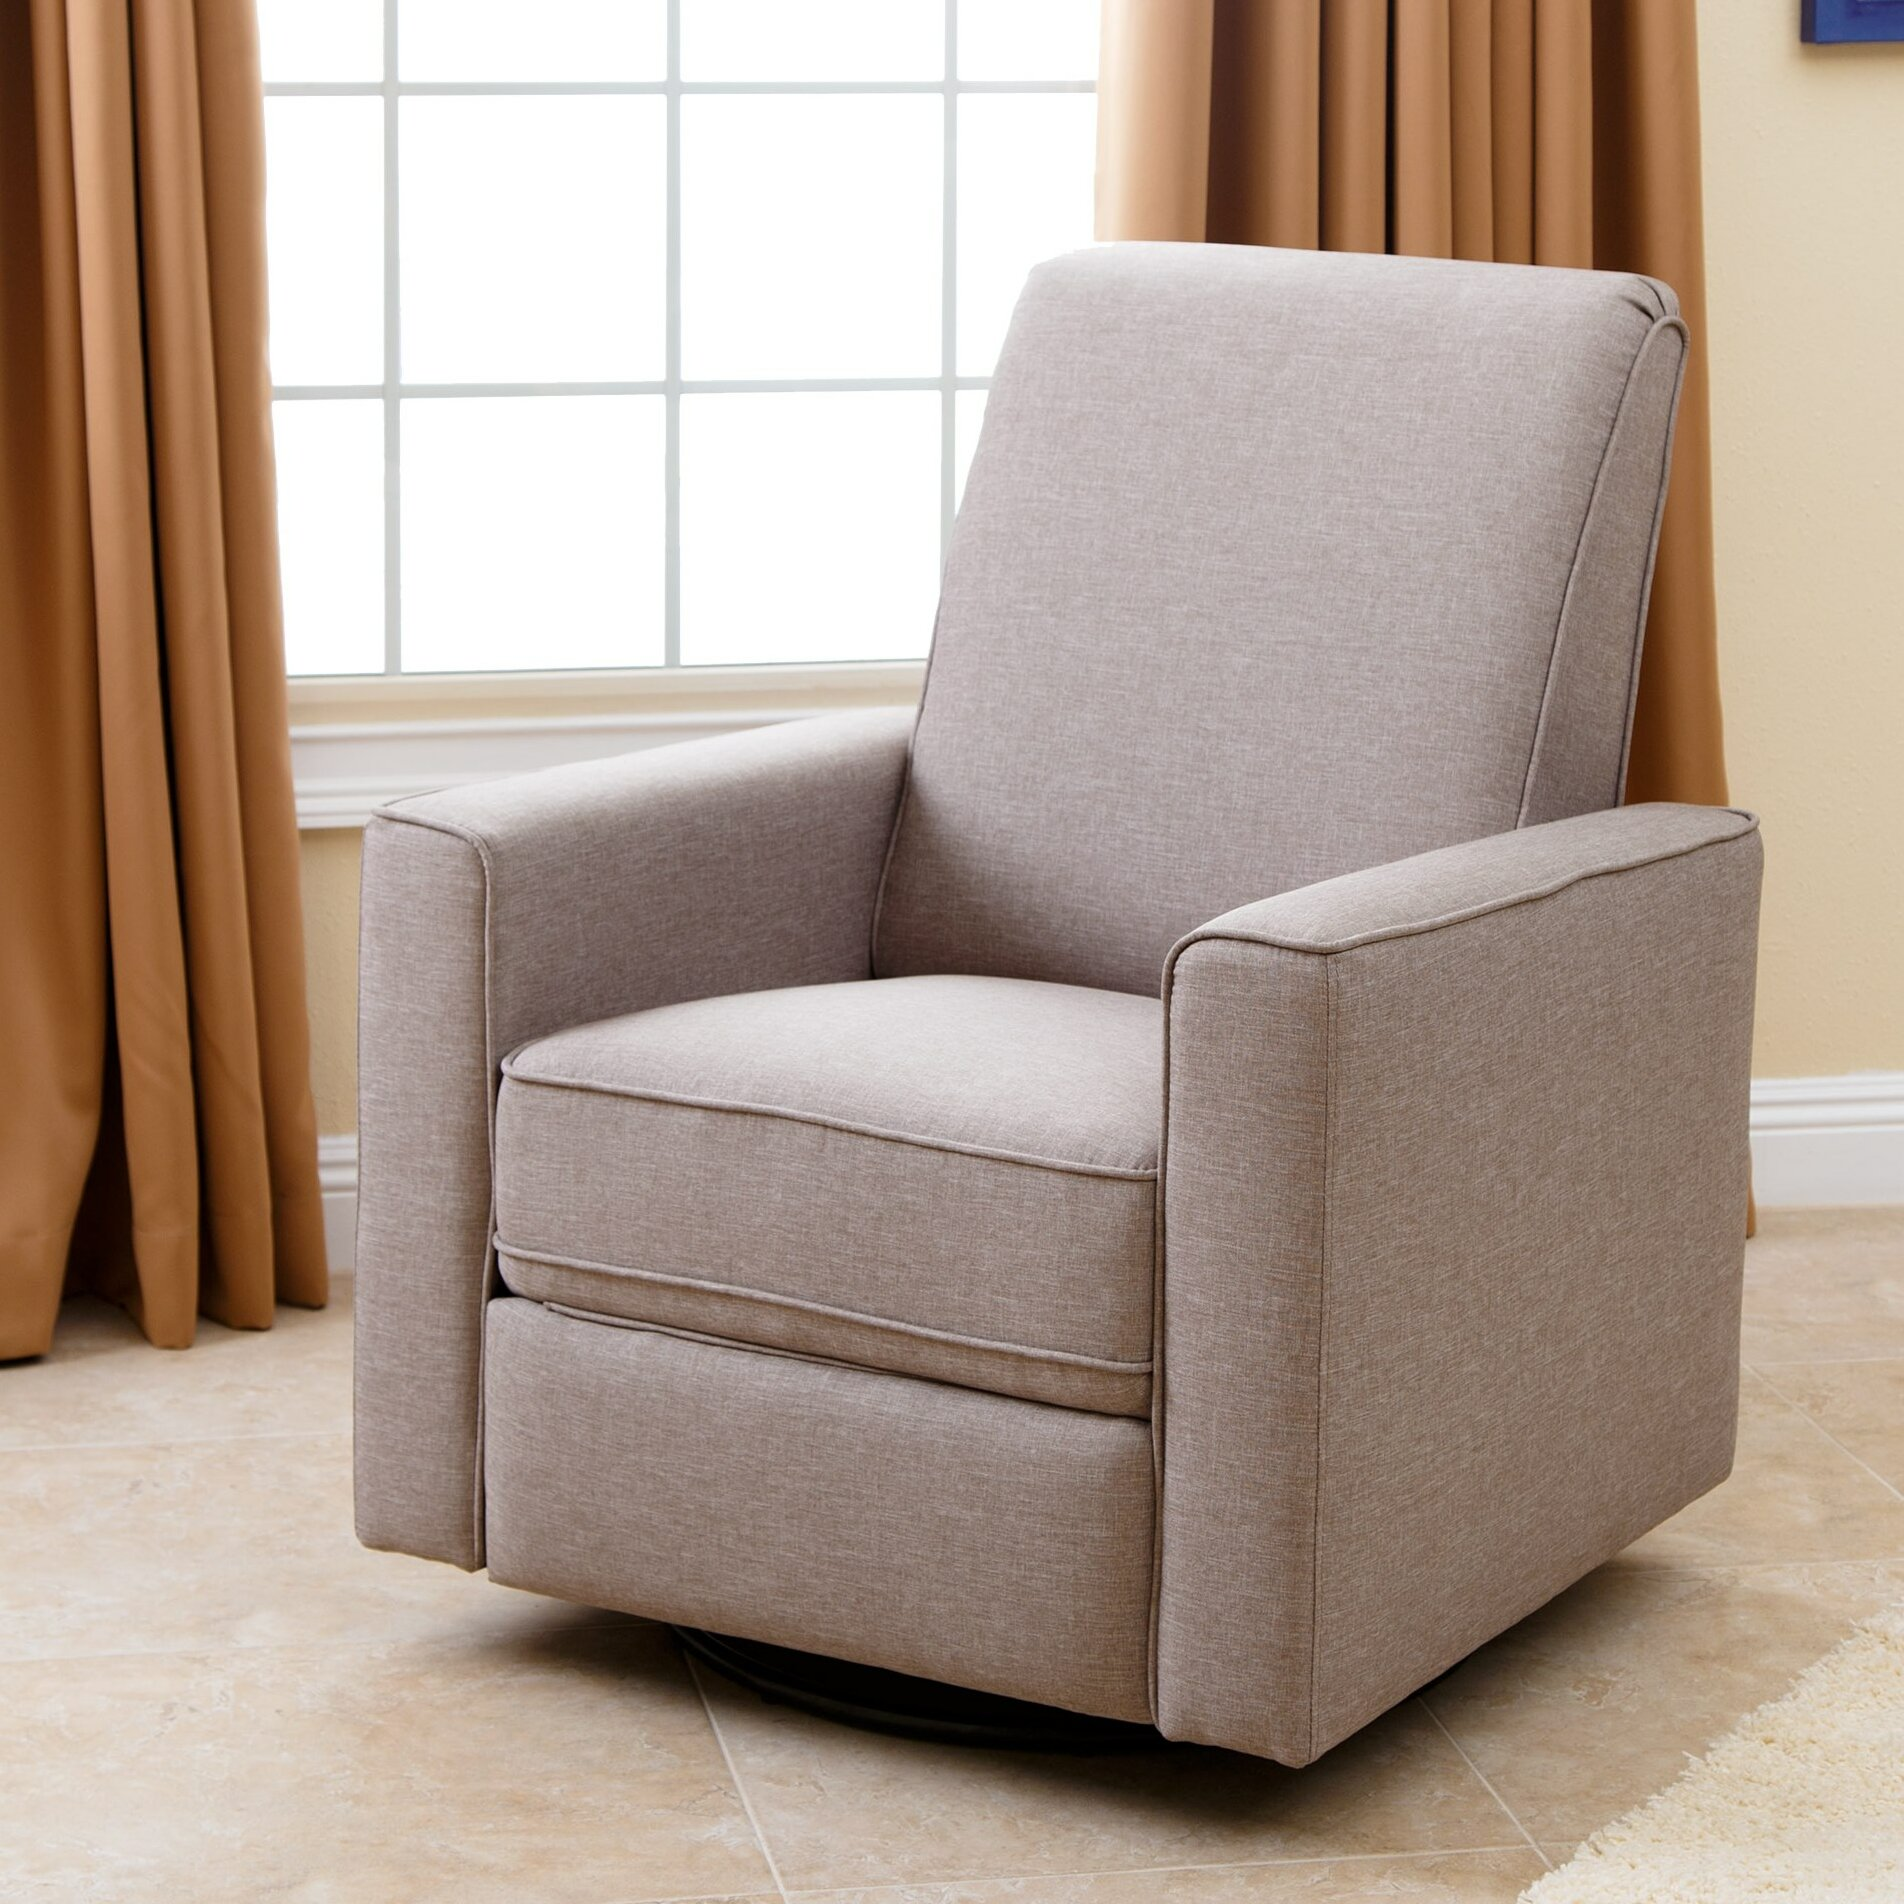 full babies with dutailier room glider nursery ottoman r replacement recliner ikea rocking of chairs cushions size us chair living rocker